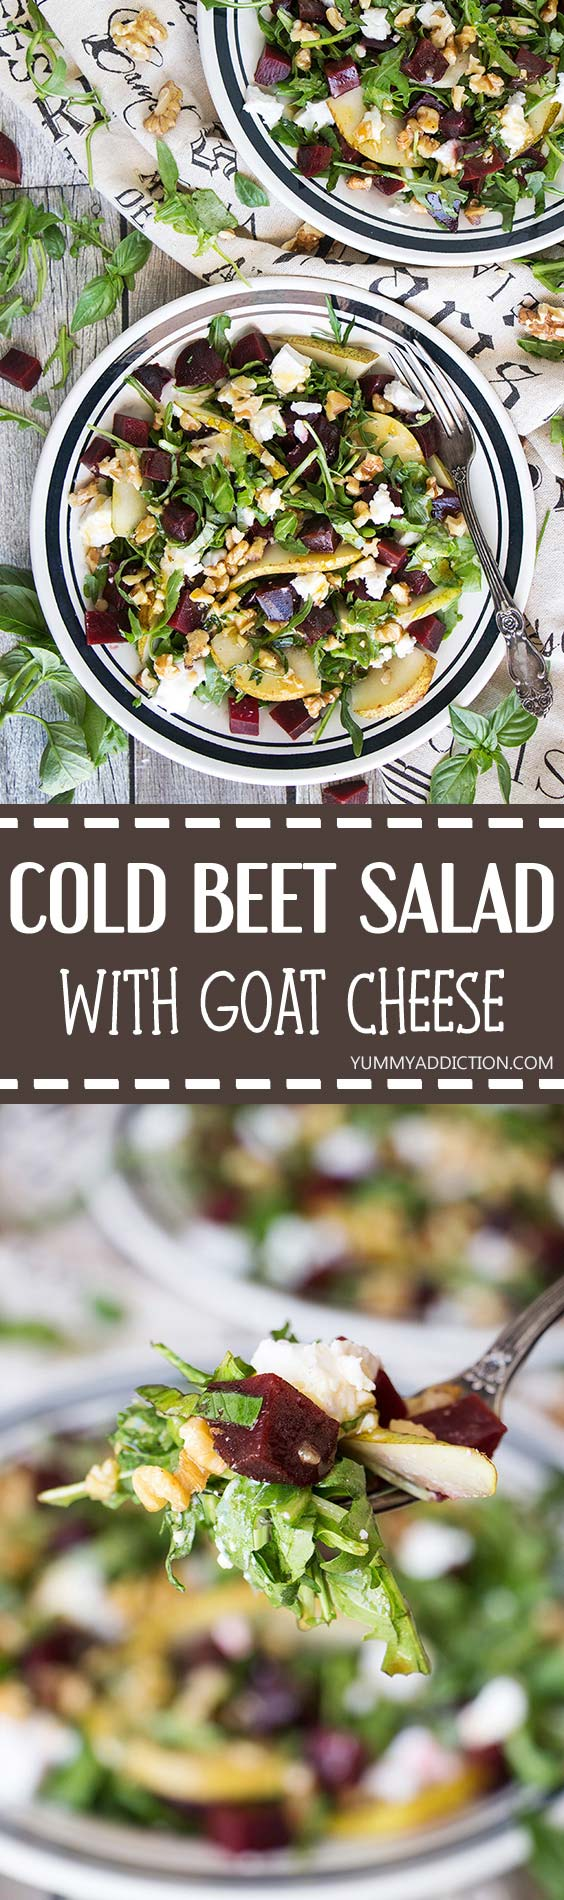 This Cold Beet Salad features goat cheese, pear, arugula, walnuts, basil, and a fantastic honey-balsamic-basil dressing. Great as a side dish or a light standalone meal! | yummyaddiction.com